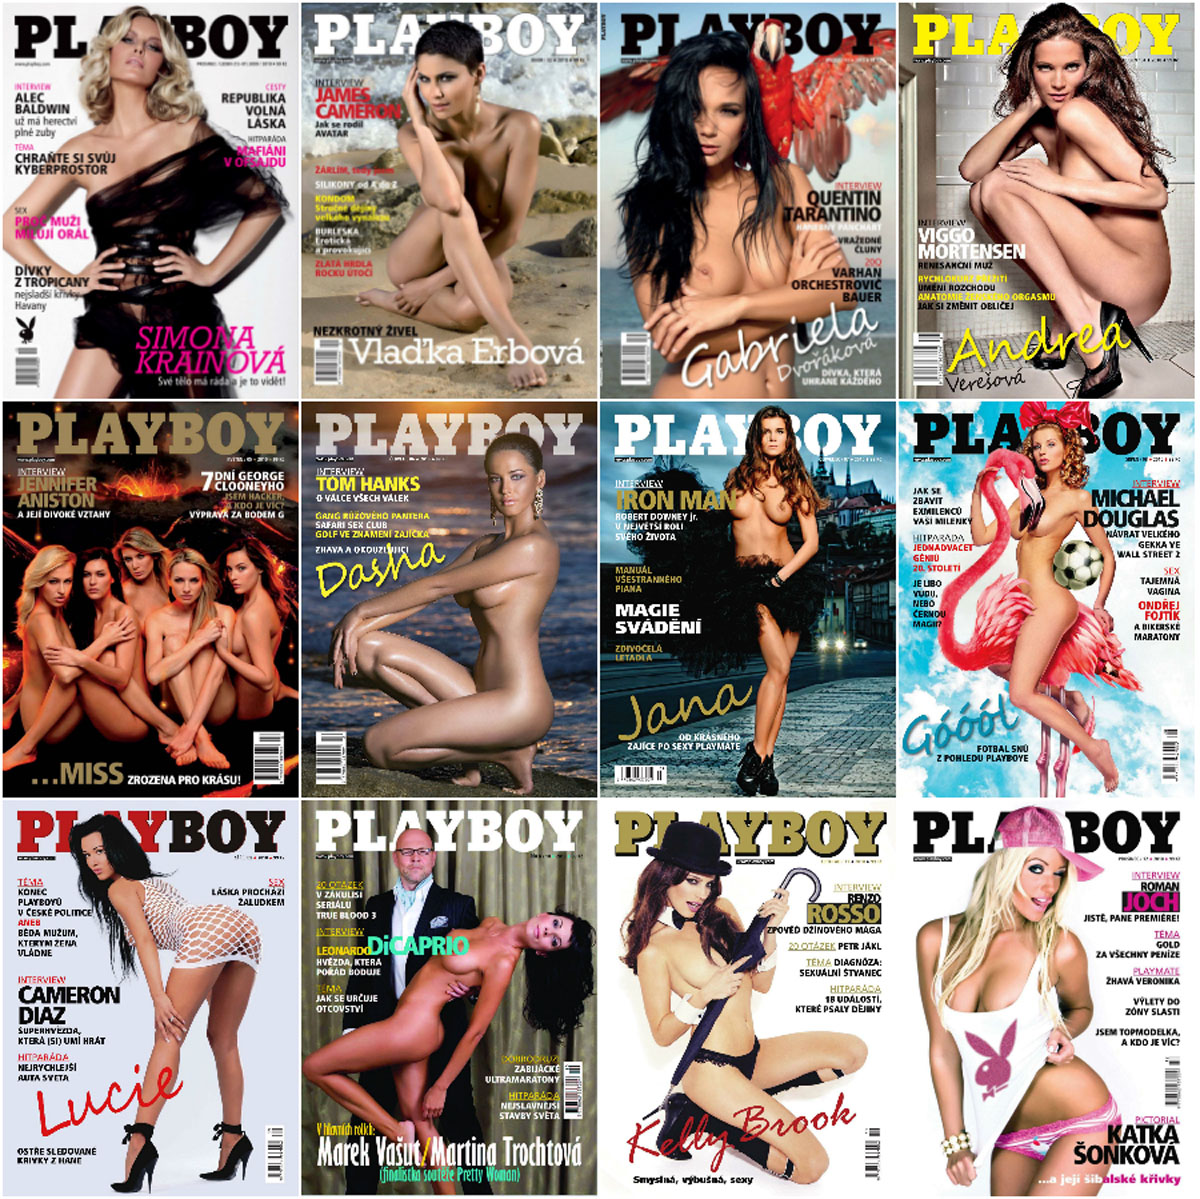 Playboy Czech - Full Year 2010 Collection free download